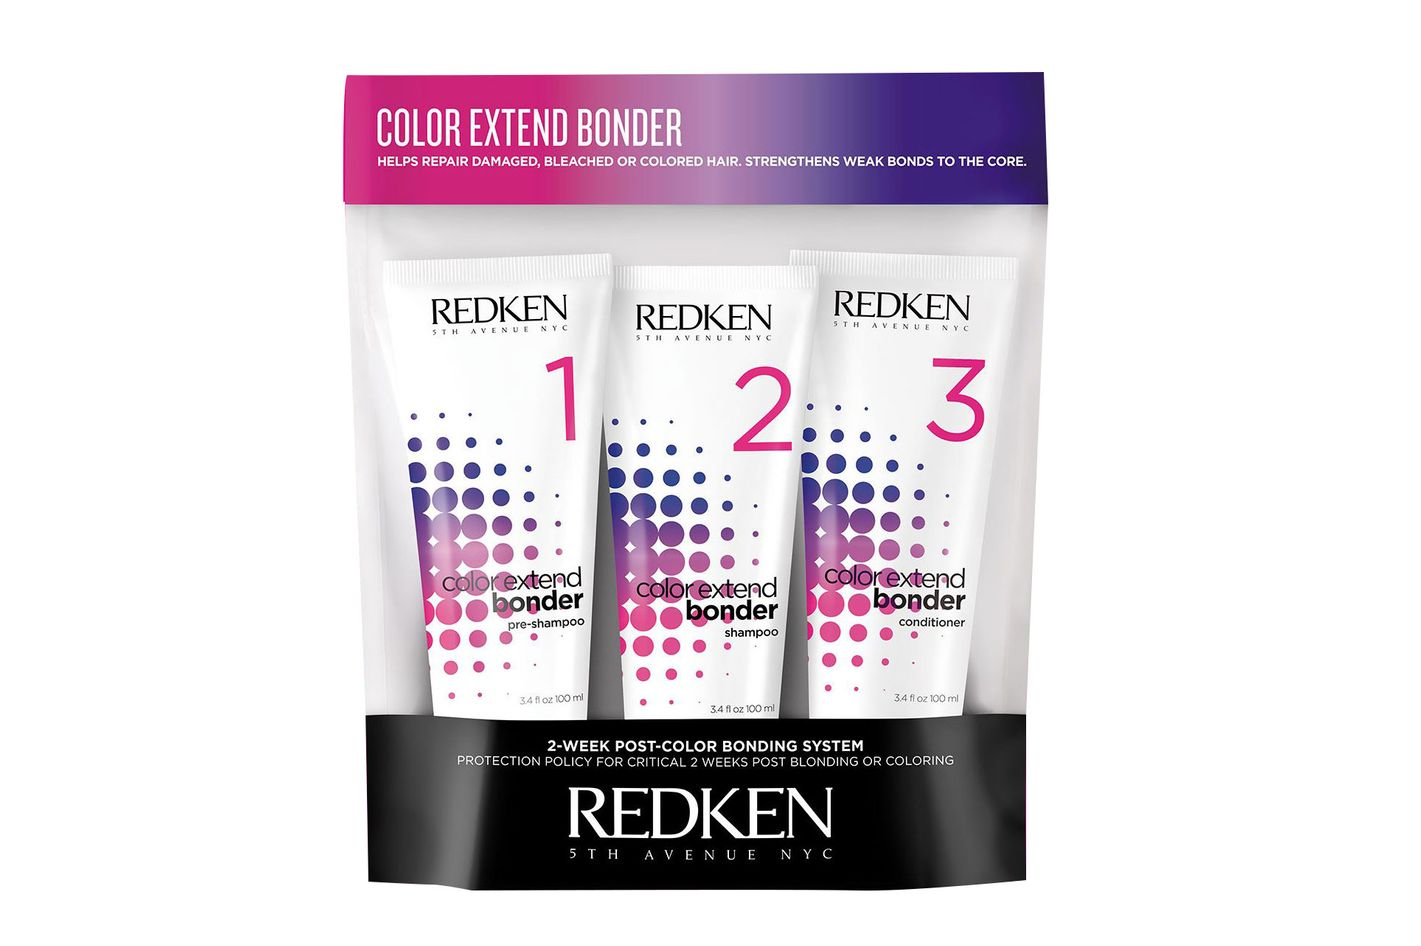 Redken Color Extend Bonder Kit